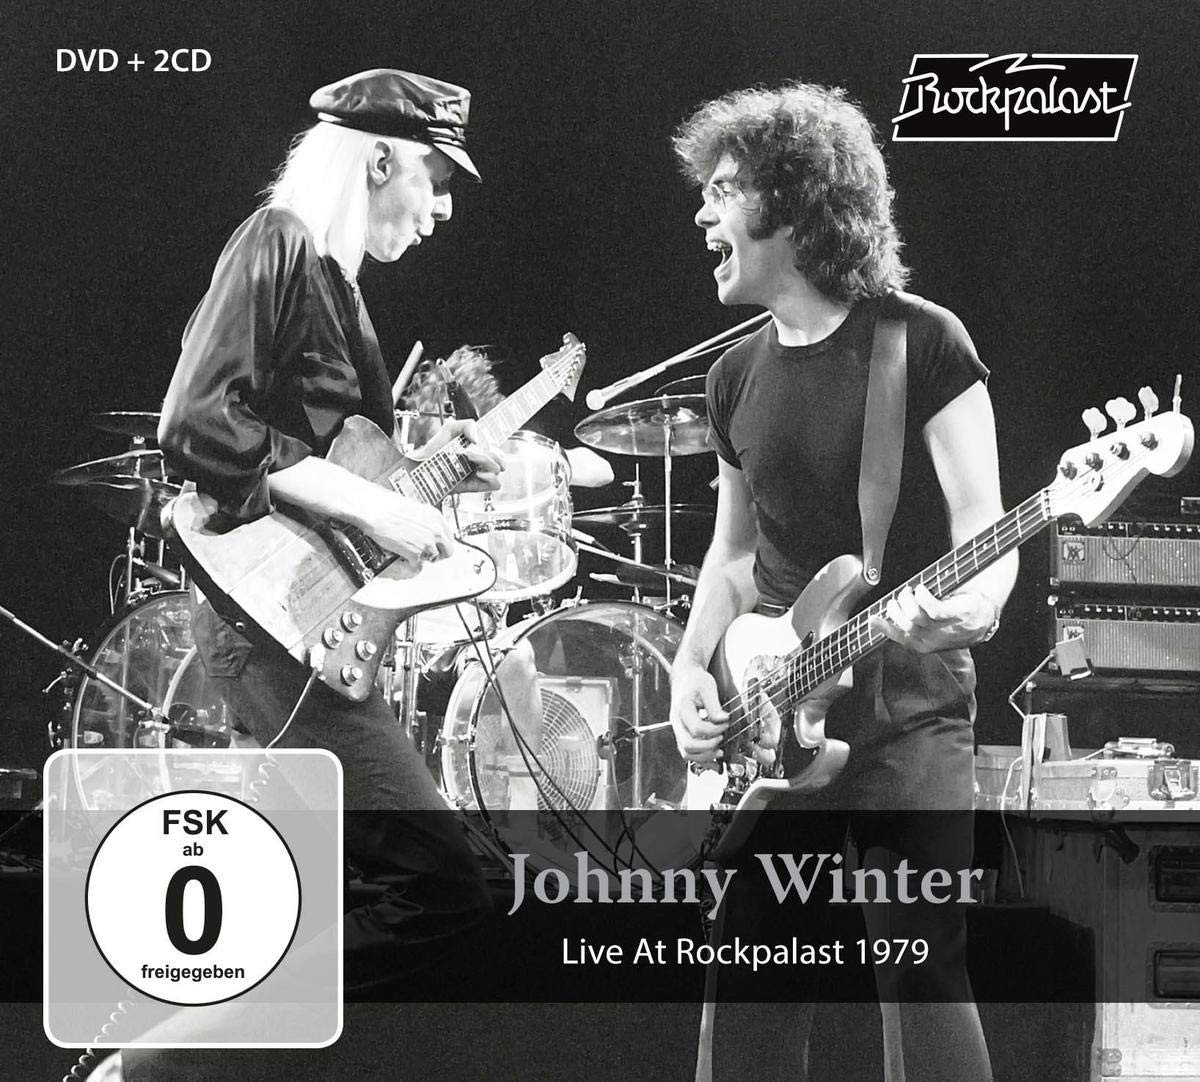 Live At R ockpalast 1979 (2CD+DVD)